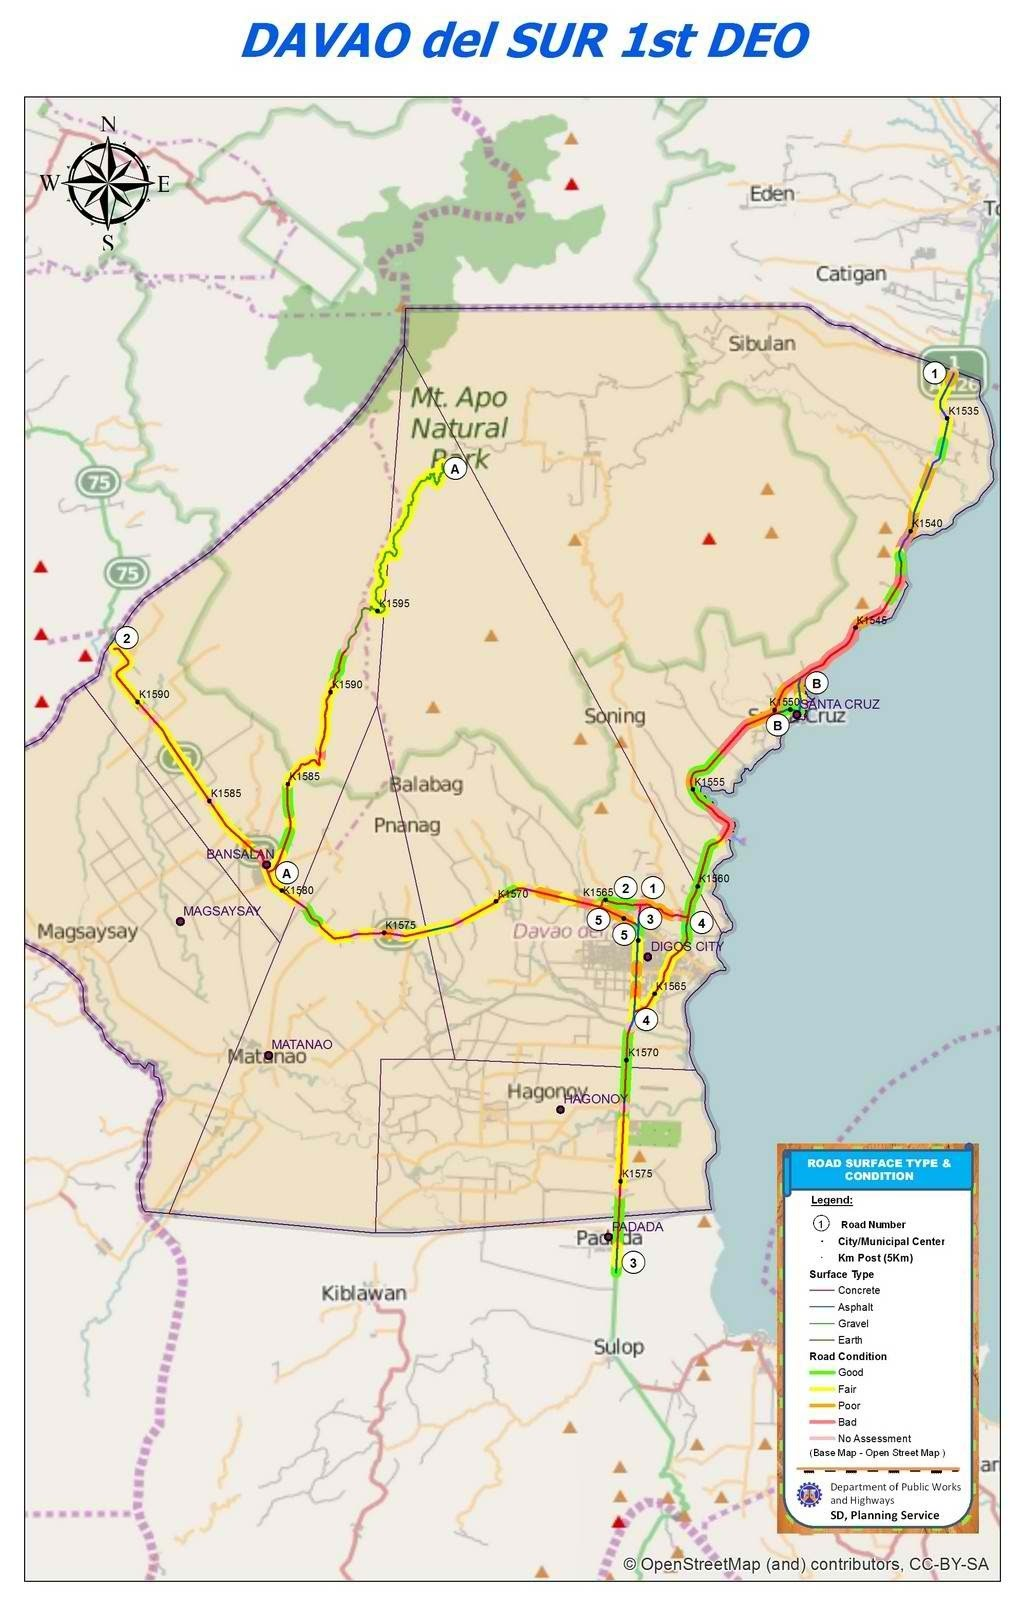 Map Davao City Map Davao del Sur 1st District   dpwhdigosplanning